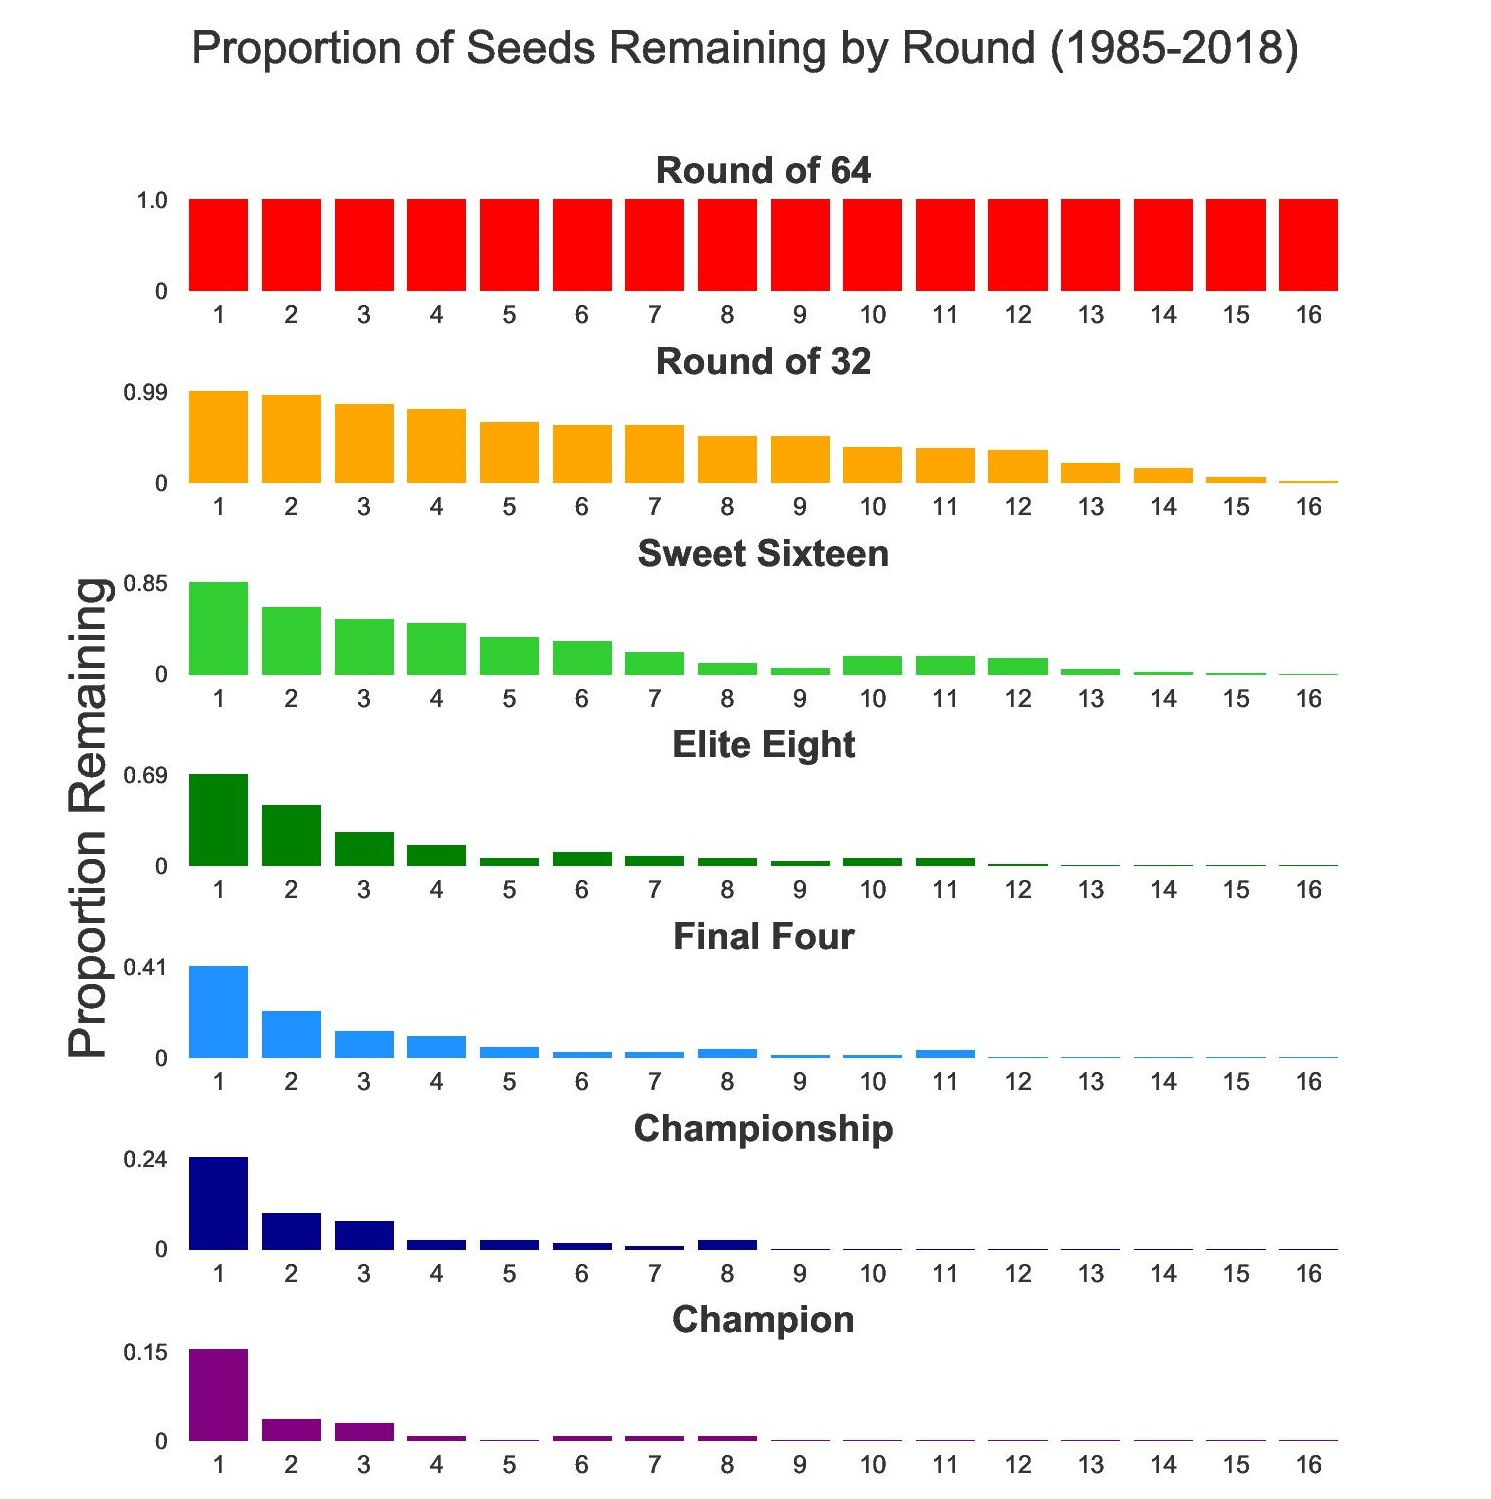 Dating graph crazy hot seeds